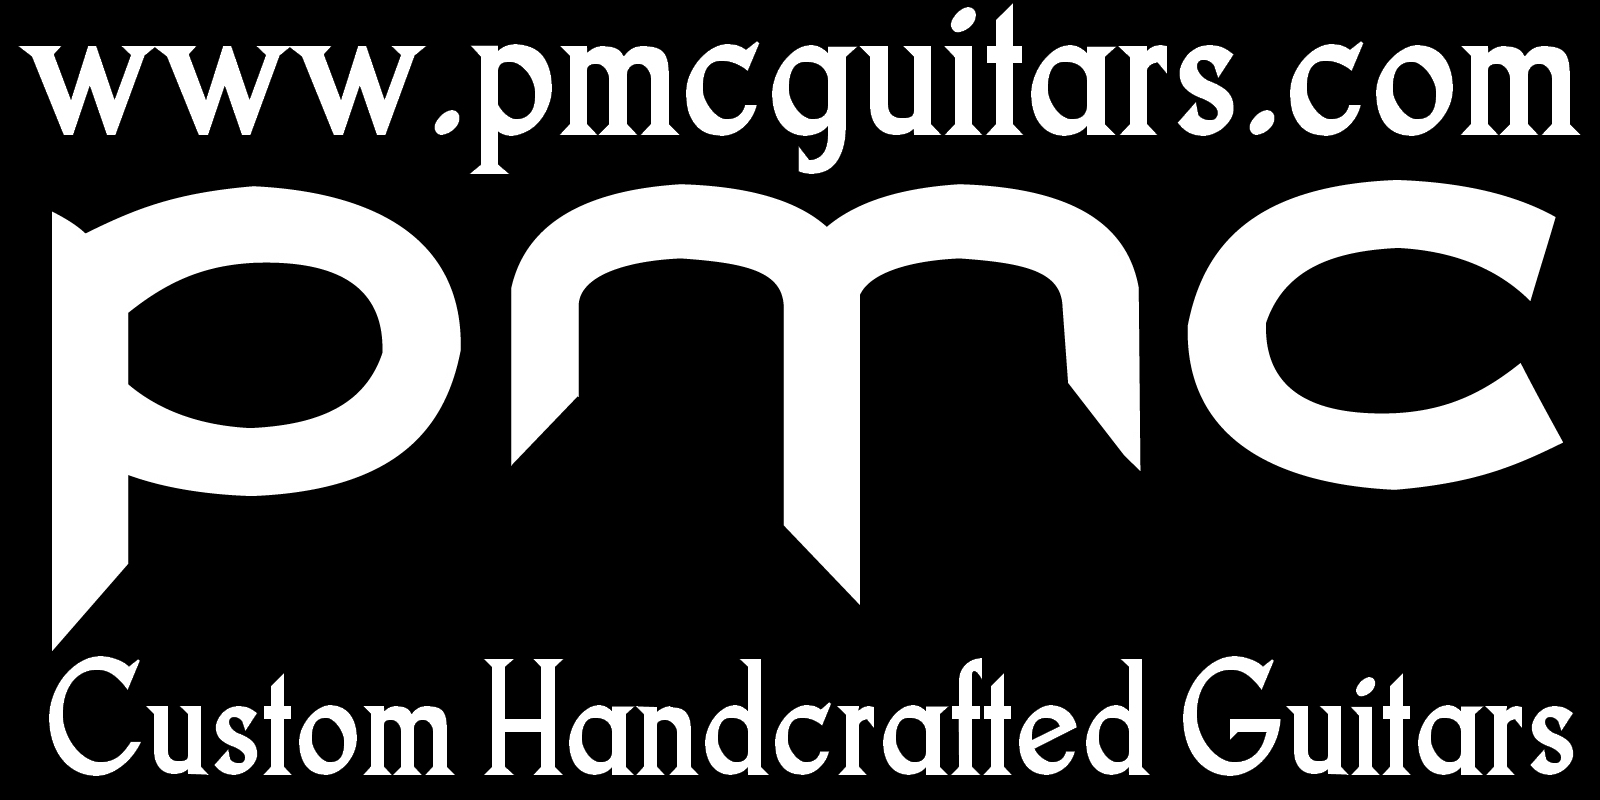 PMC Guitares logo (2)